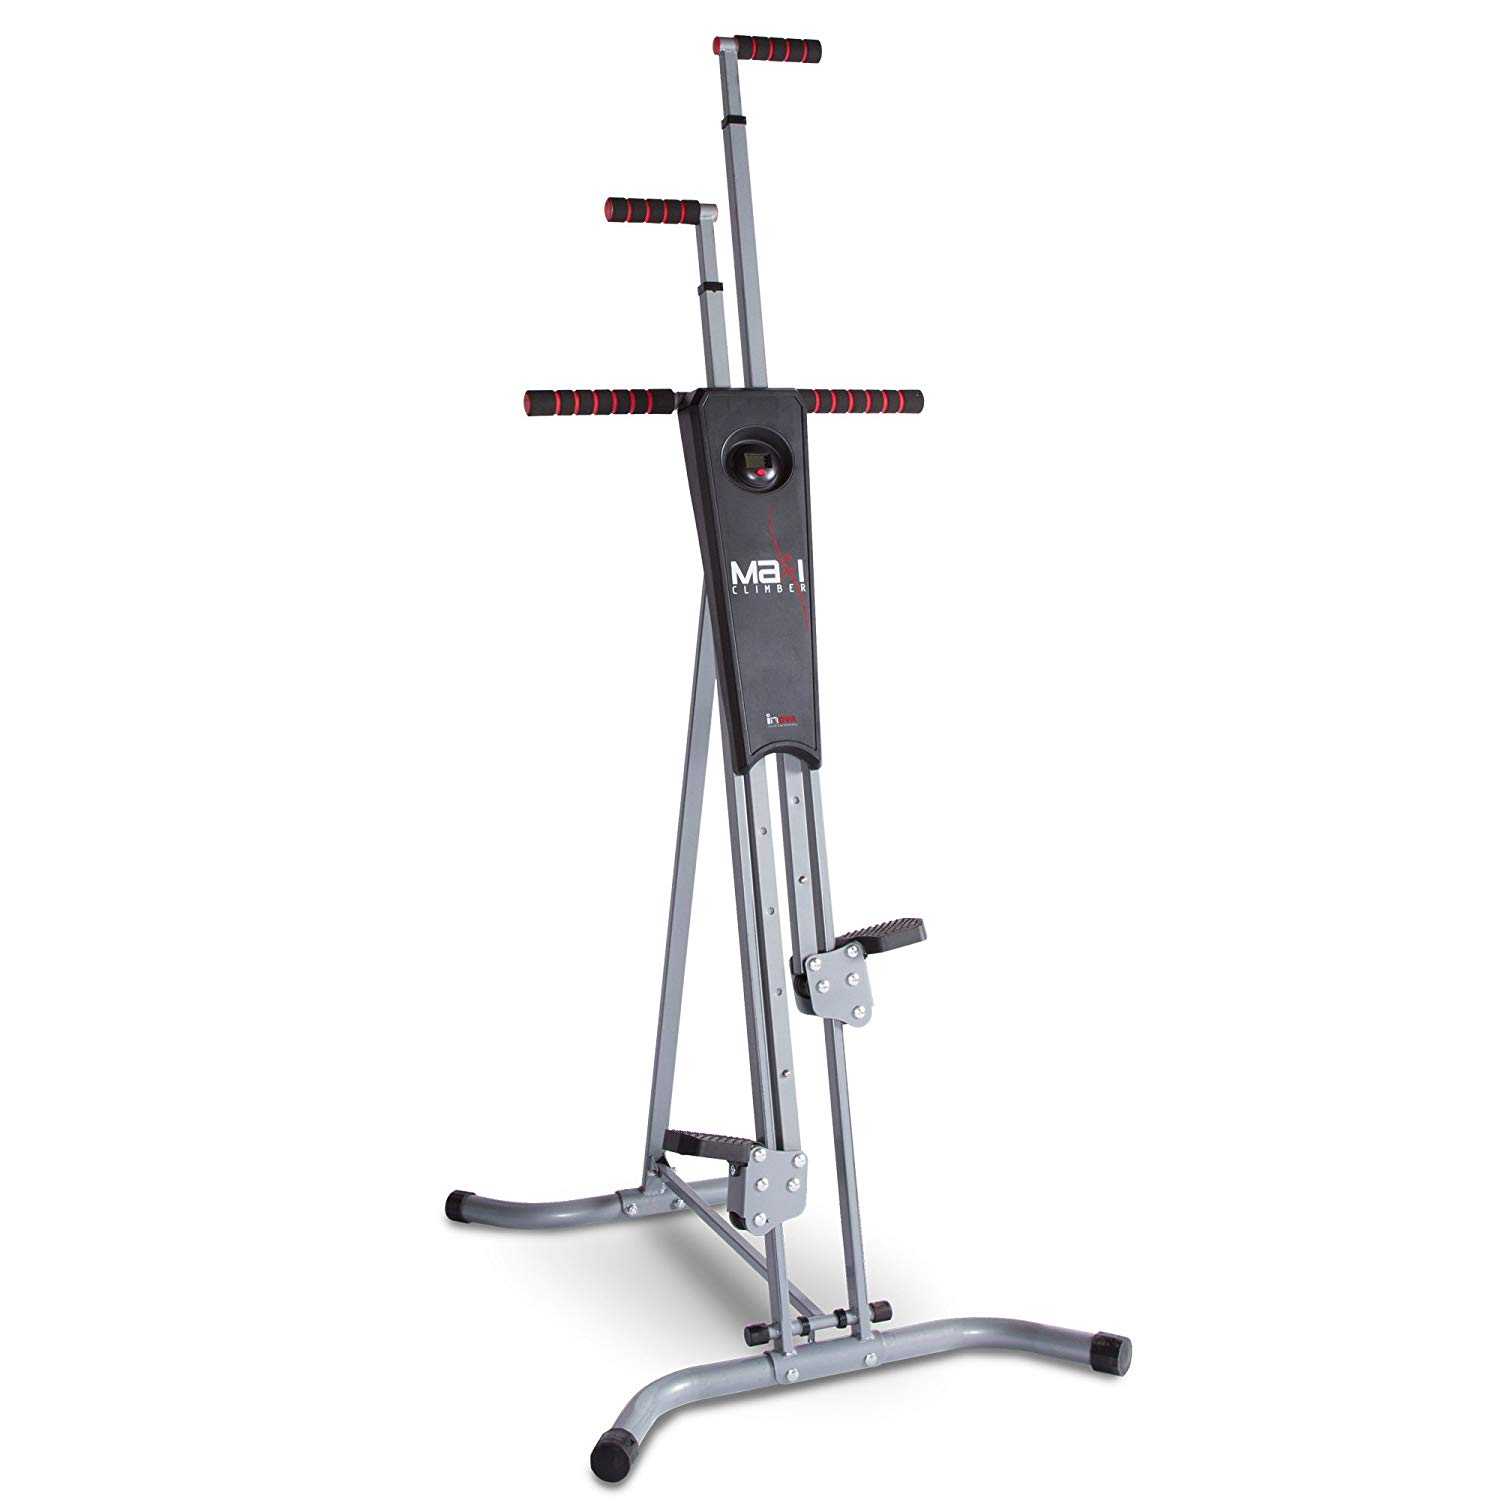 MaxiClimber Total Body Workout Home Gym Exercise Equipment, Vertical Climber